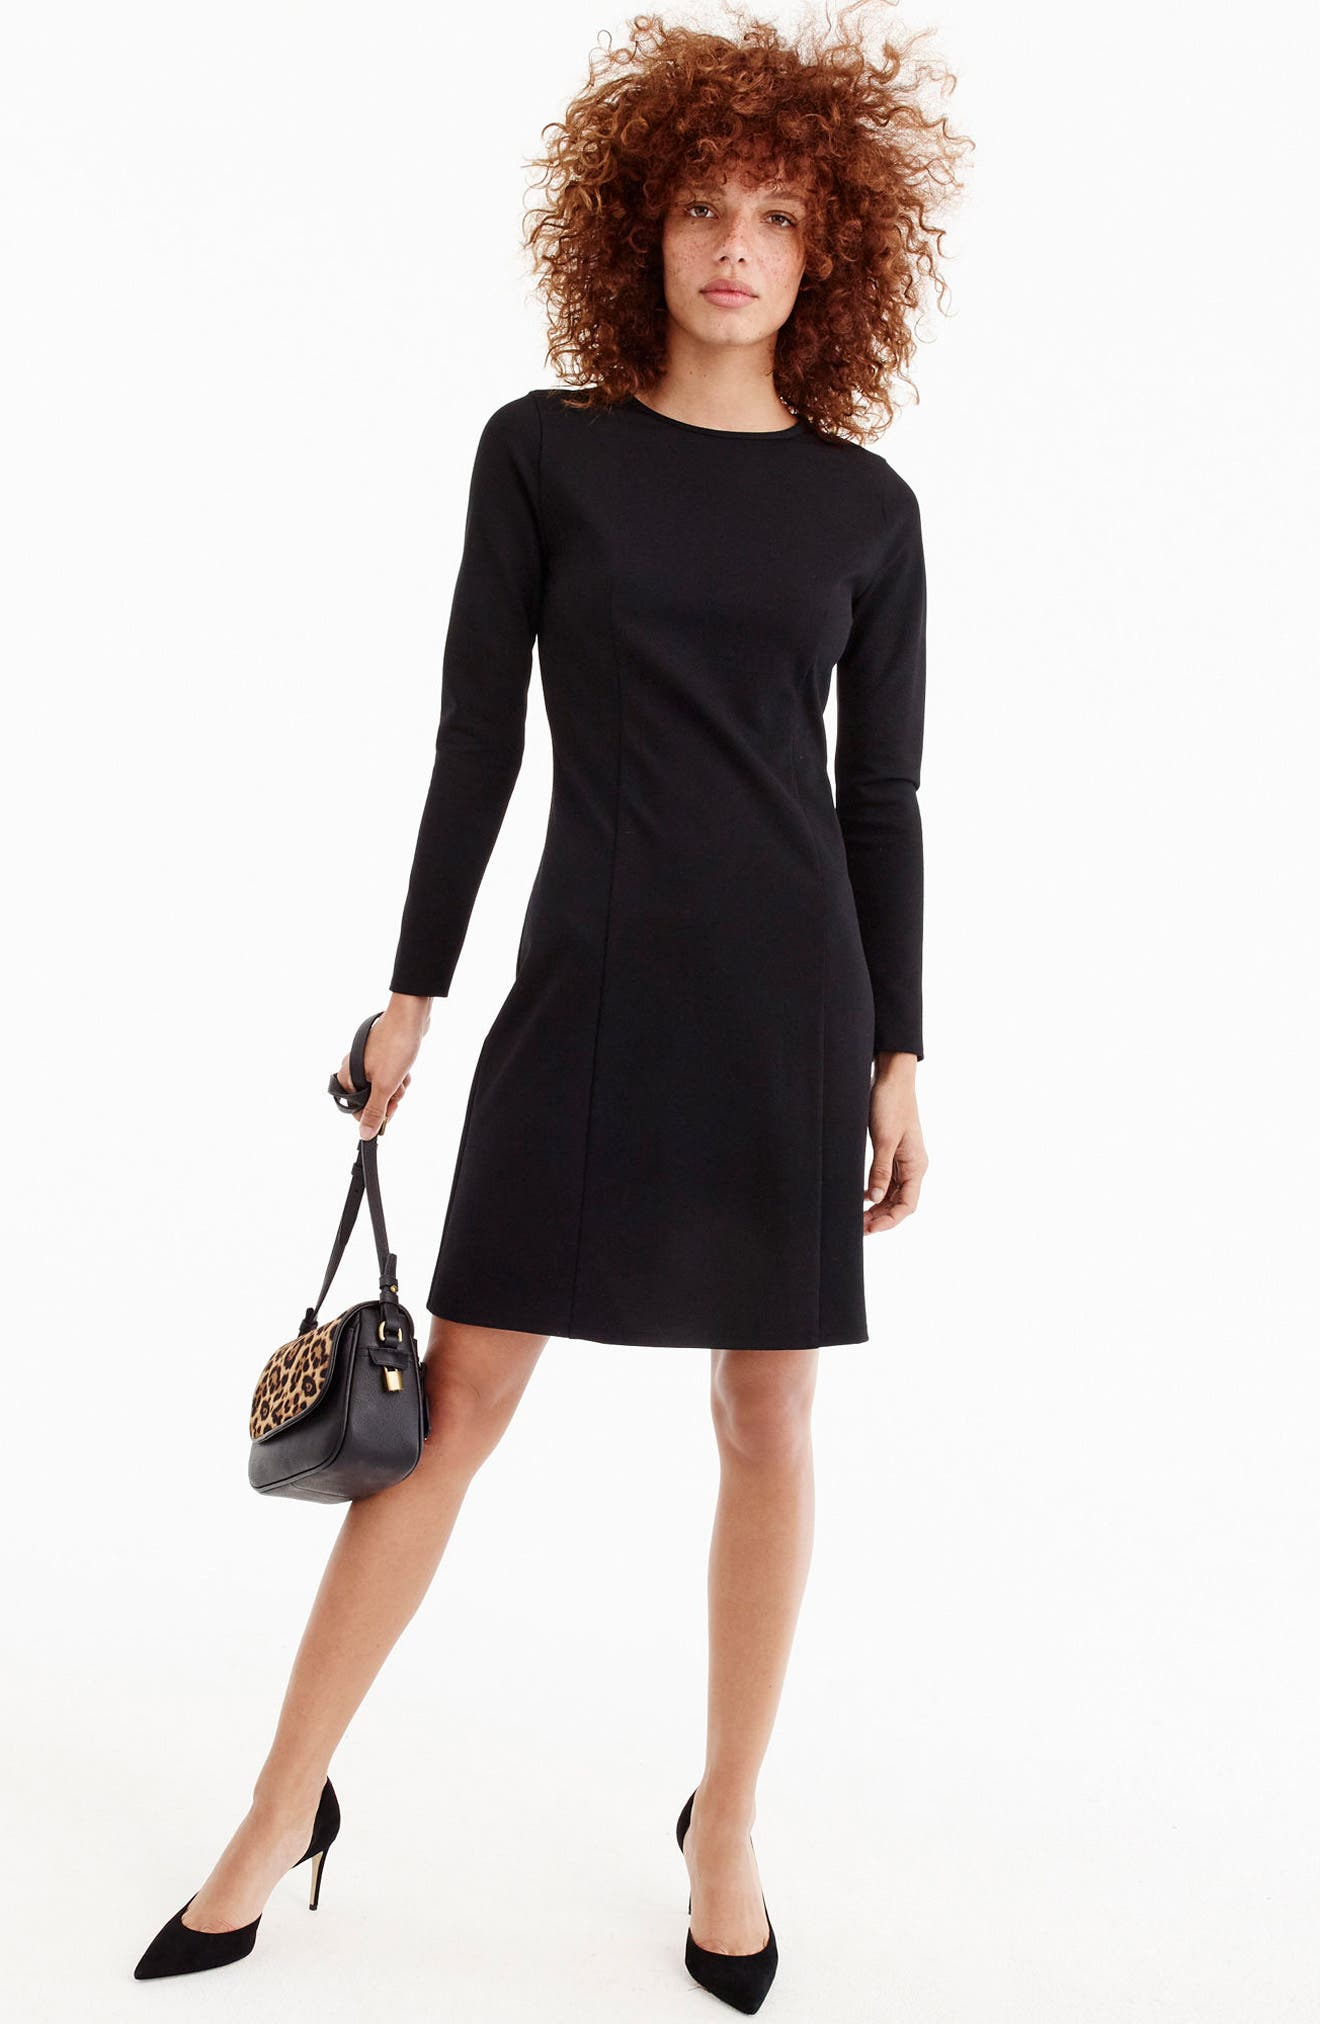 Storm Ponte Knit Dress,                             Alternate thumbnail 5, color,                             001